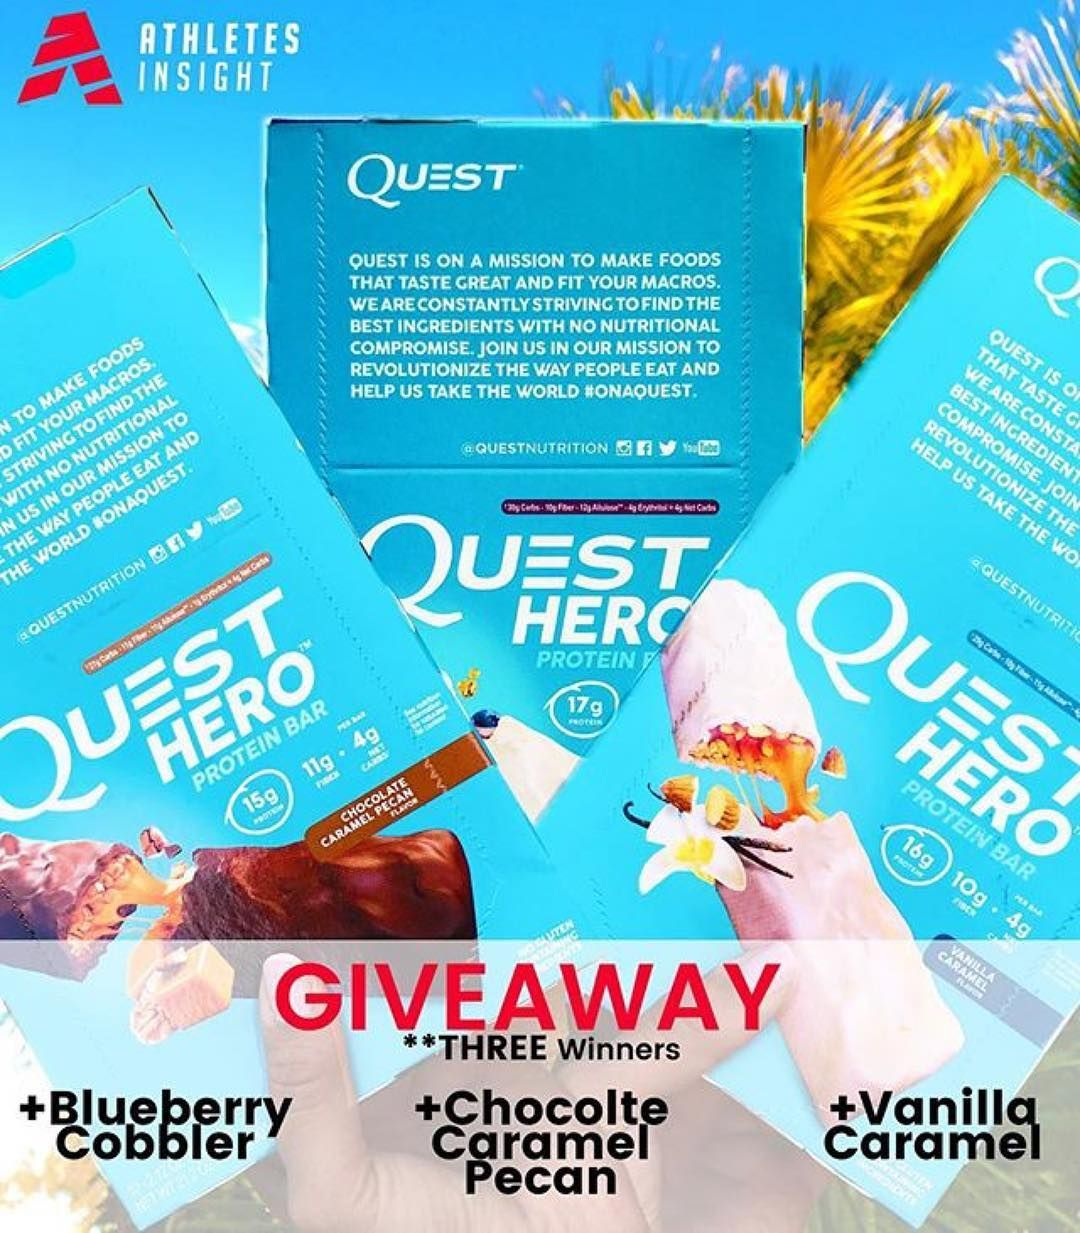 QUEST GIVEAWAY ENDS TOMORROW 3 LUCKY WINNERS Here's how to